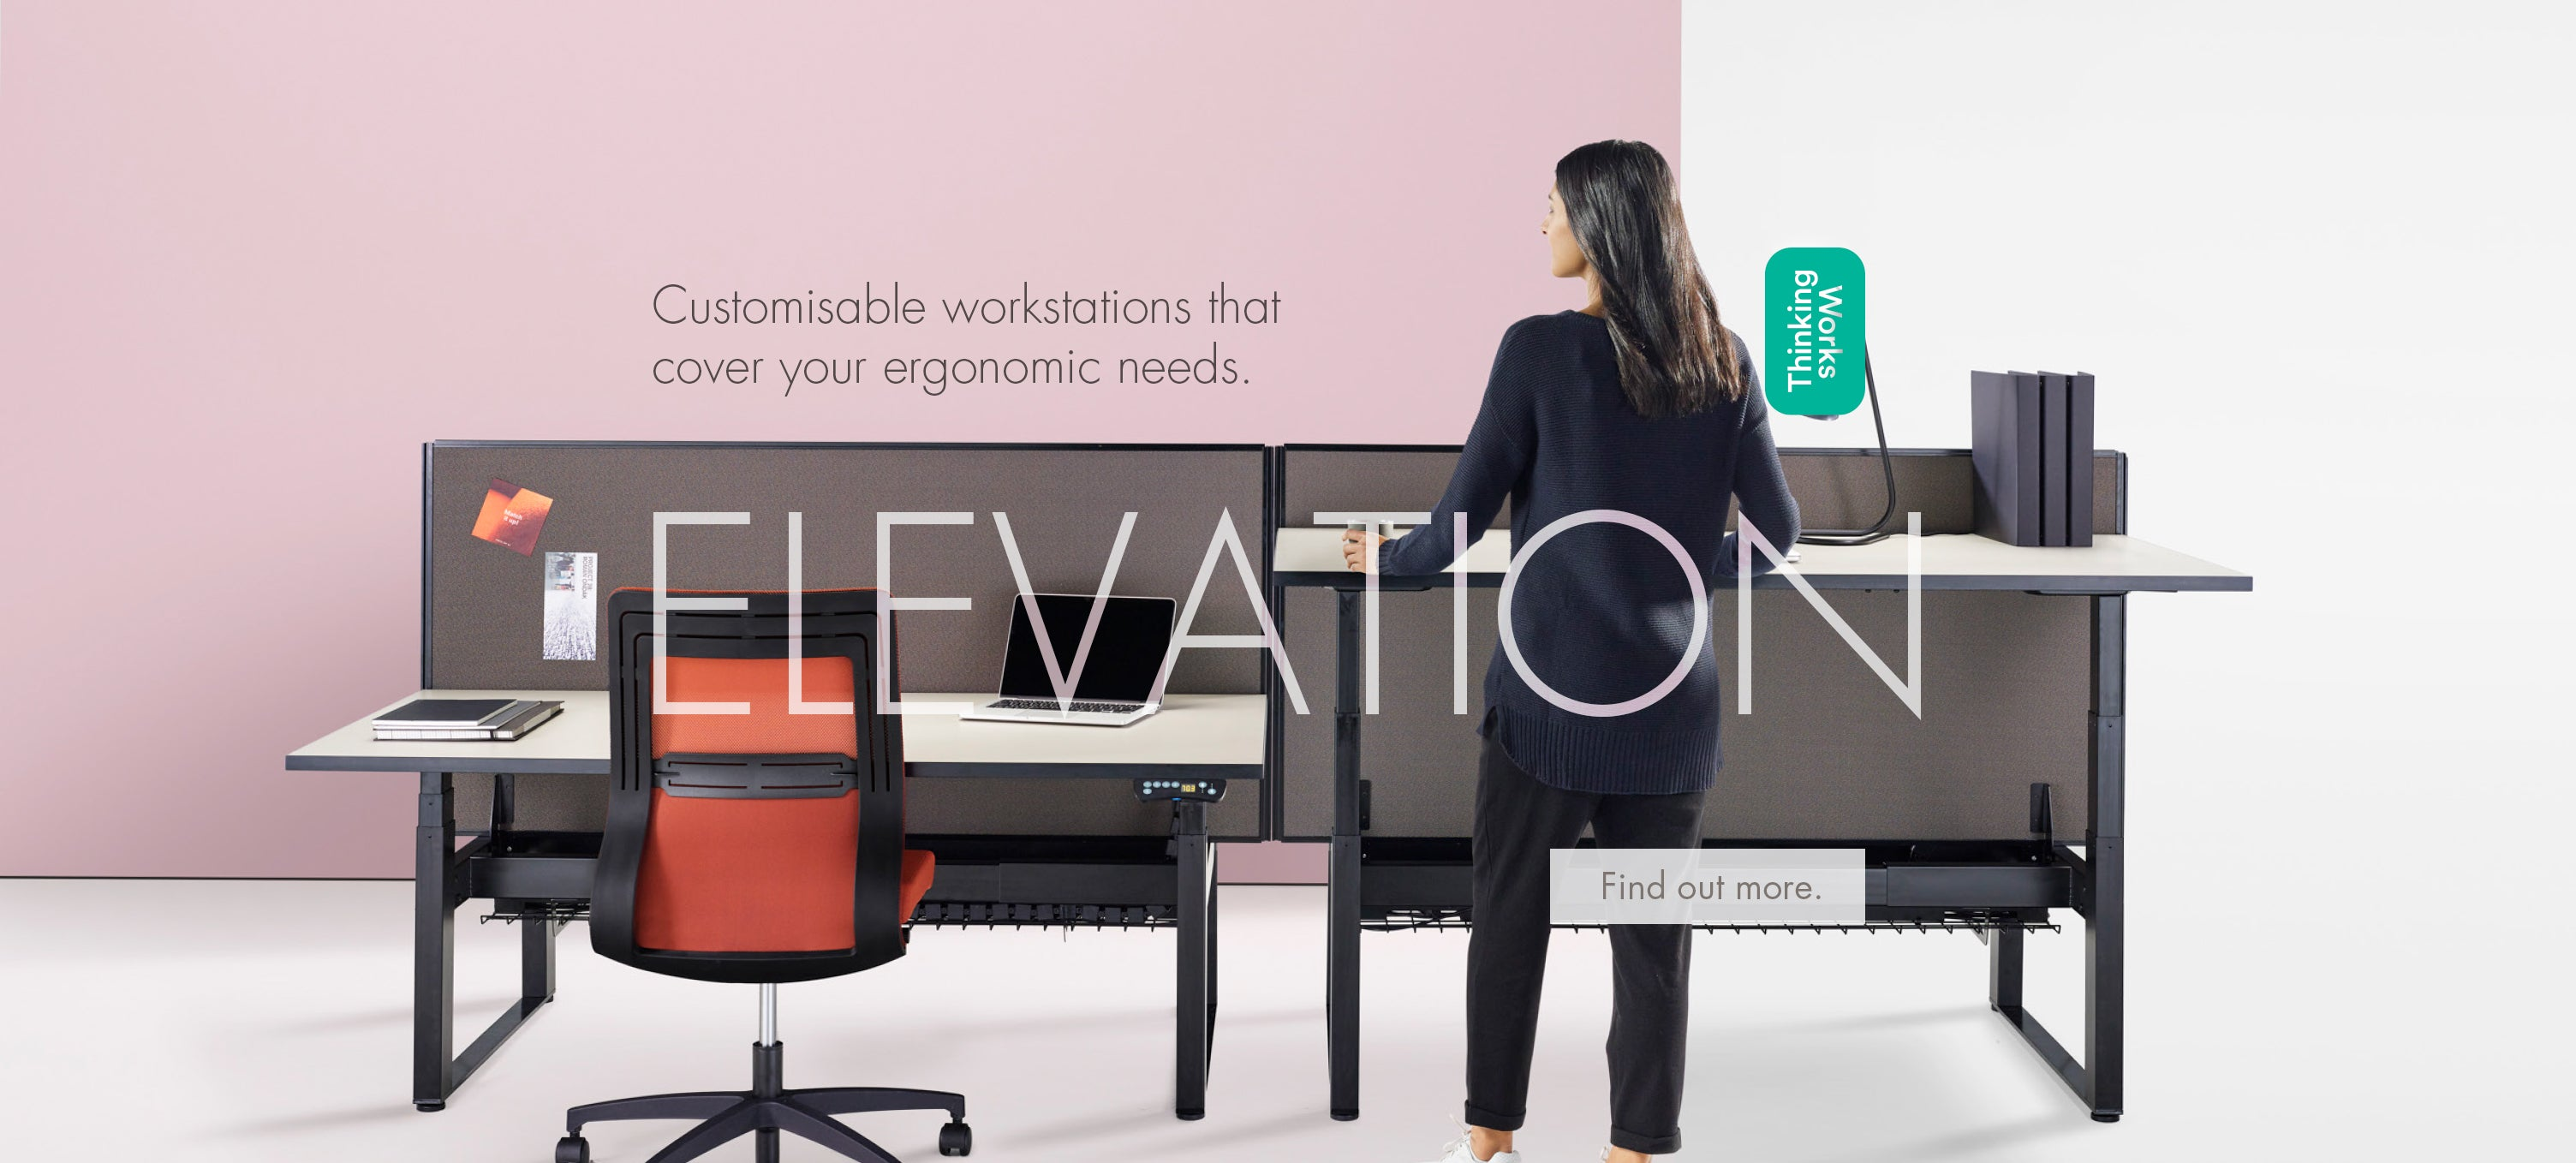 Thinking Works Elevation workstation